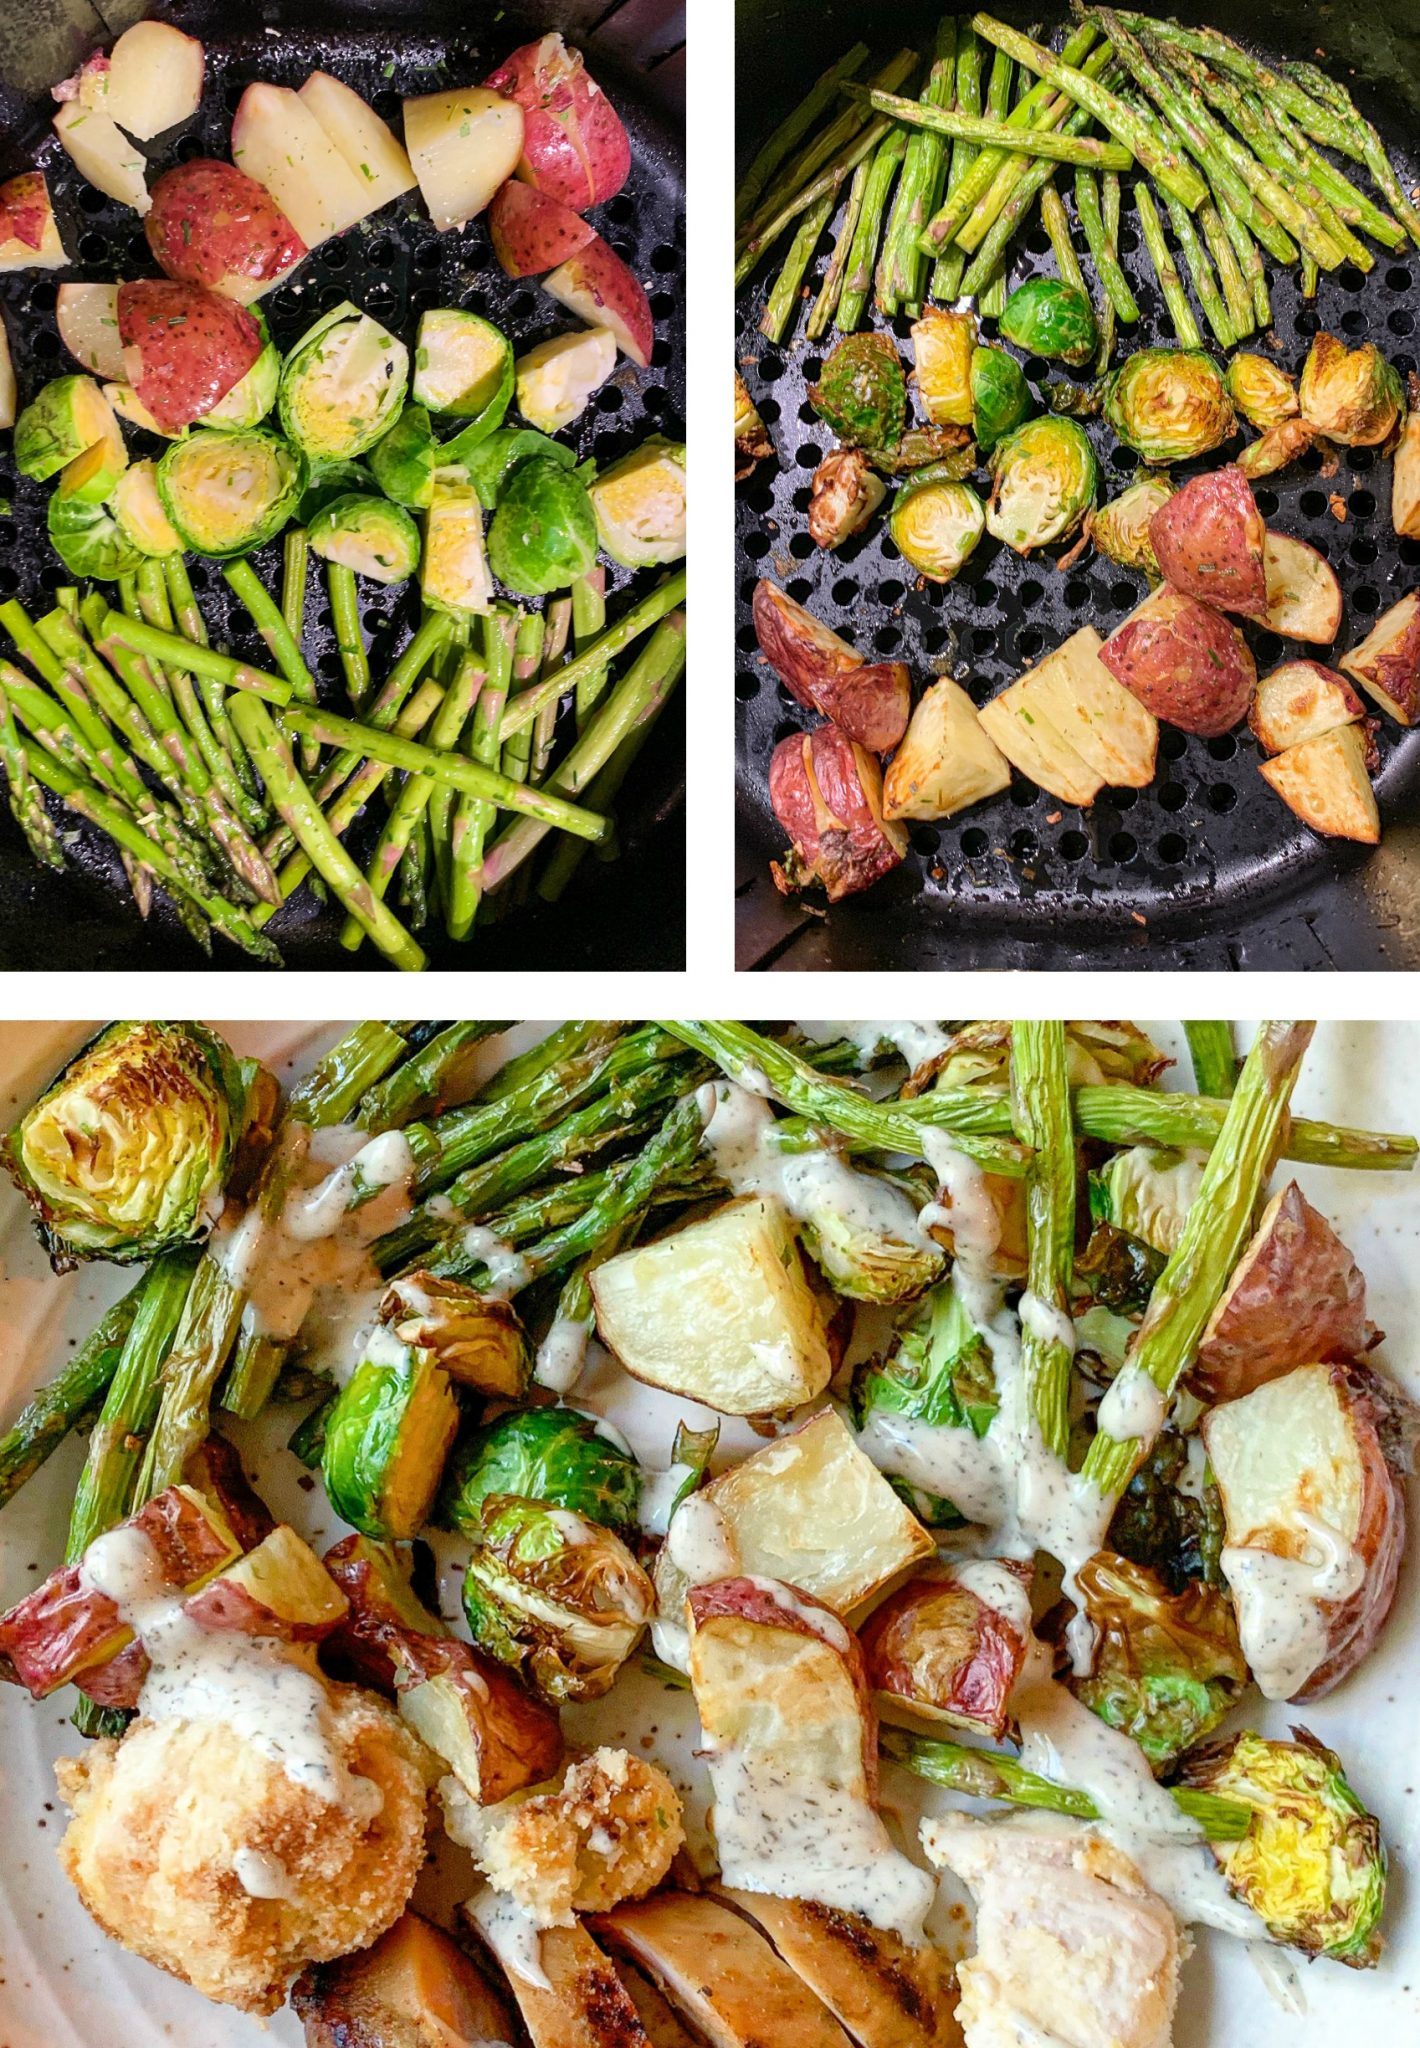 air fryer veggies, air fried Brussels sprouts asparagus, potatoes salmon, roasted veggies, lunch, air fried